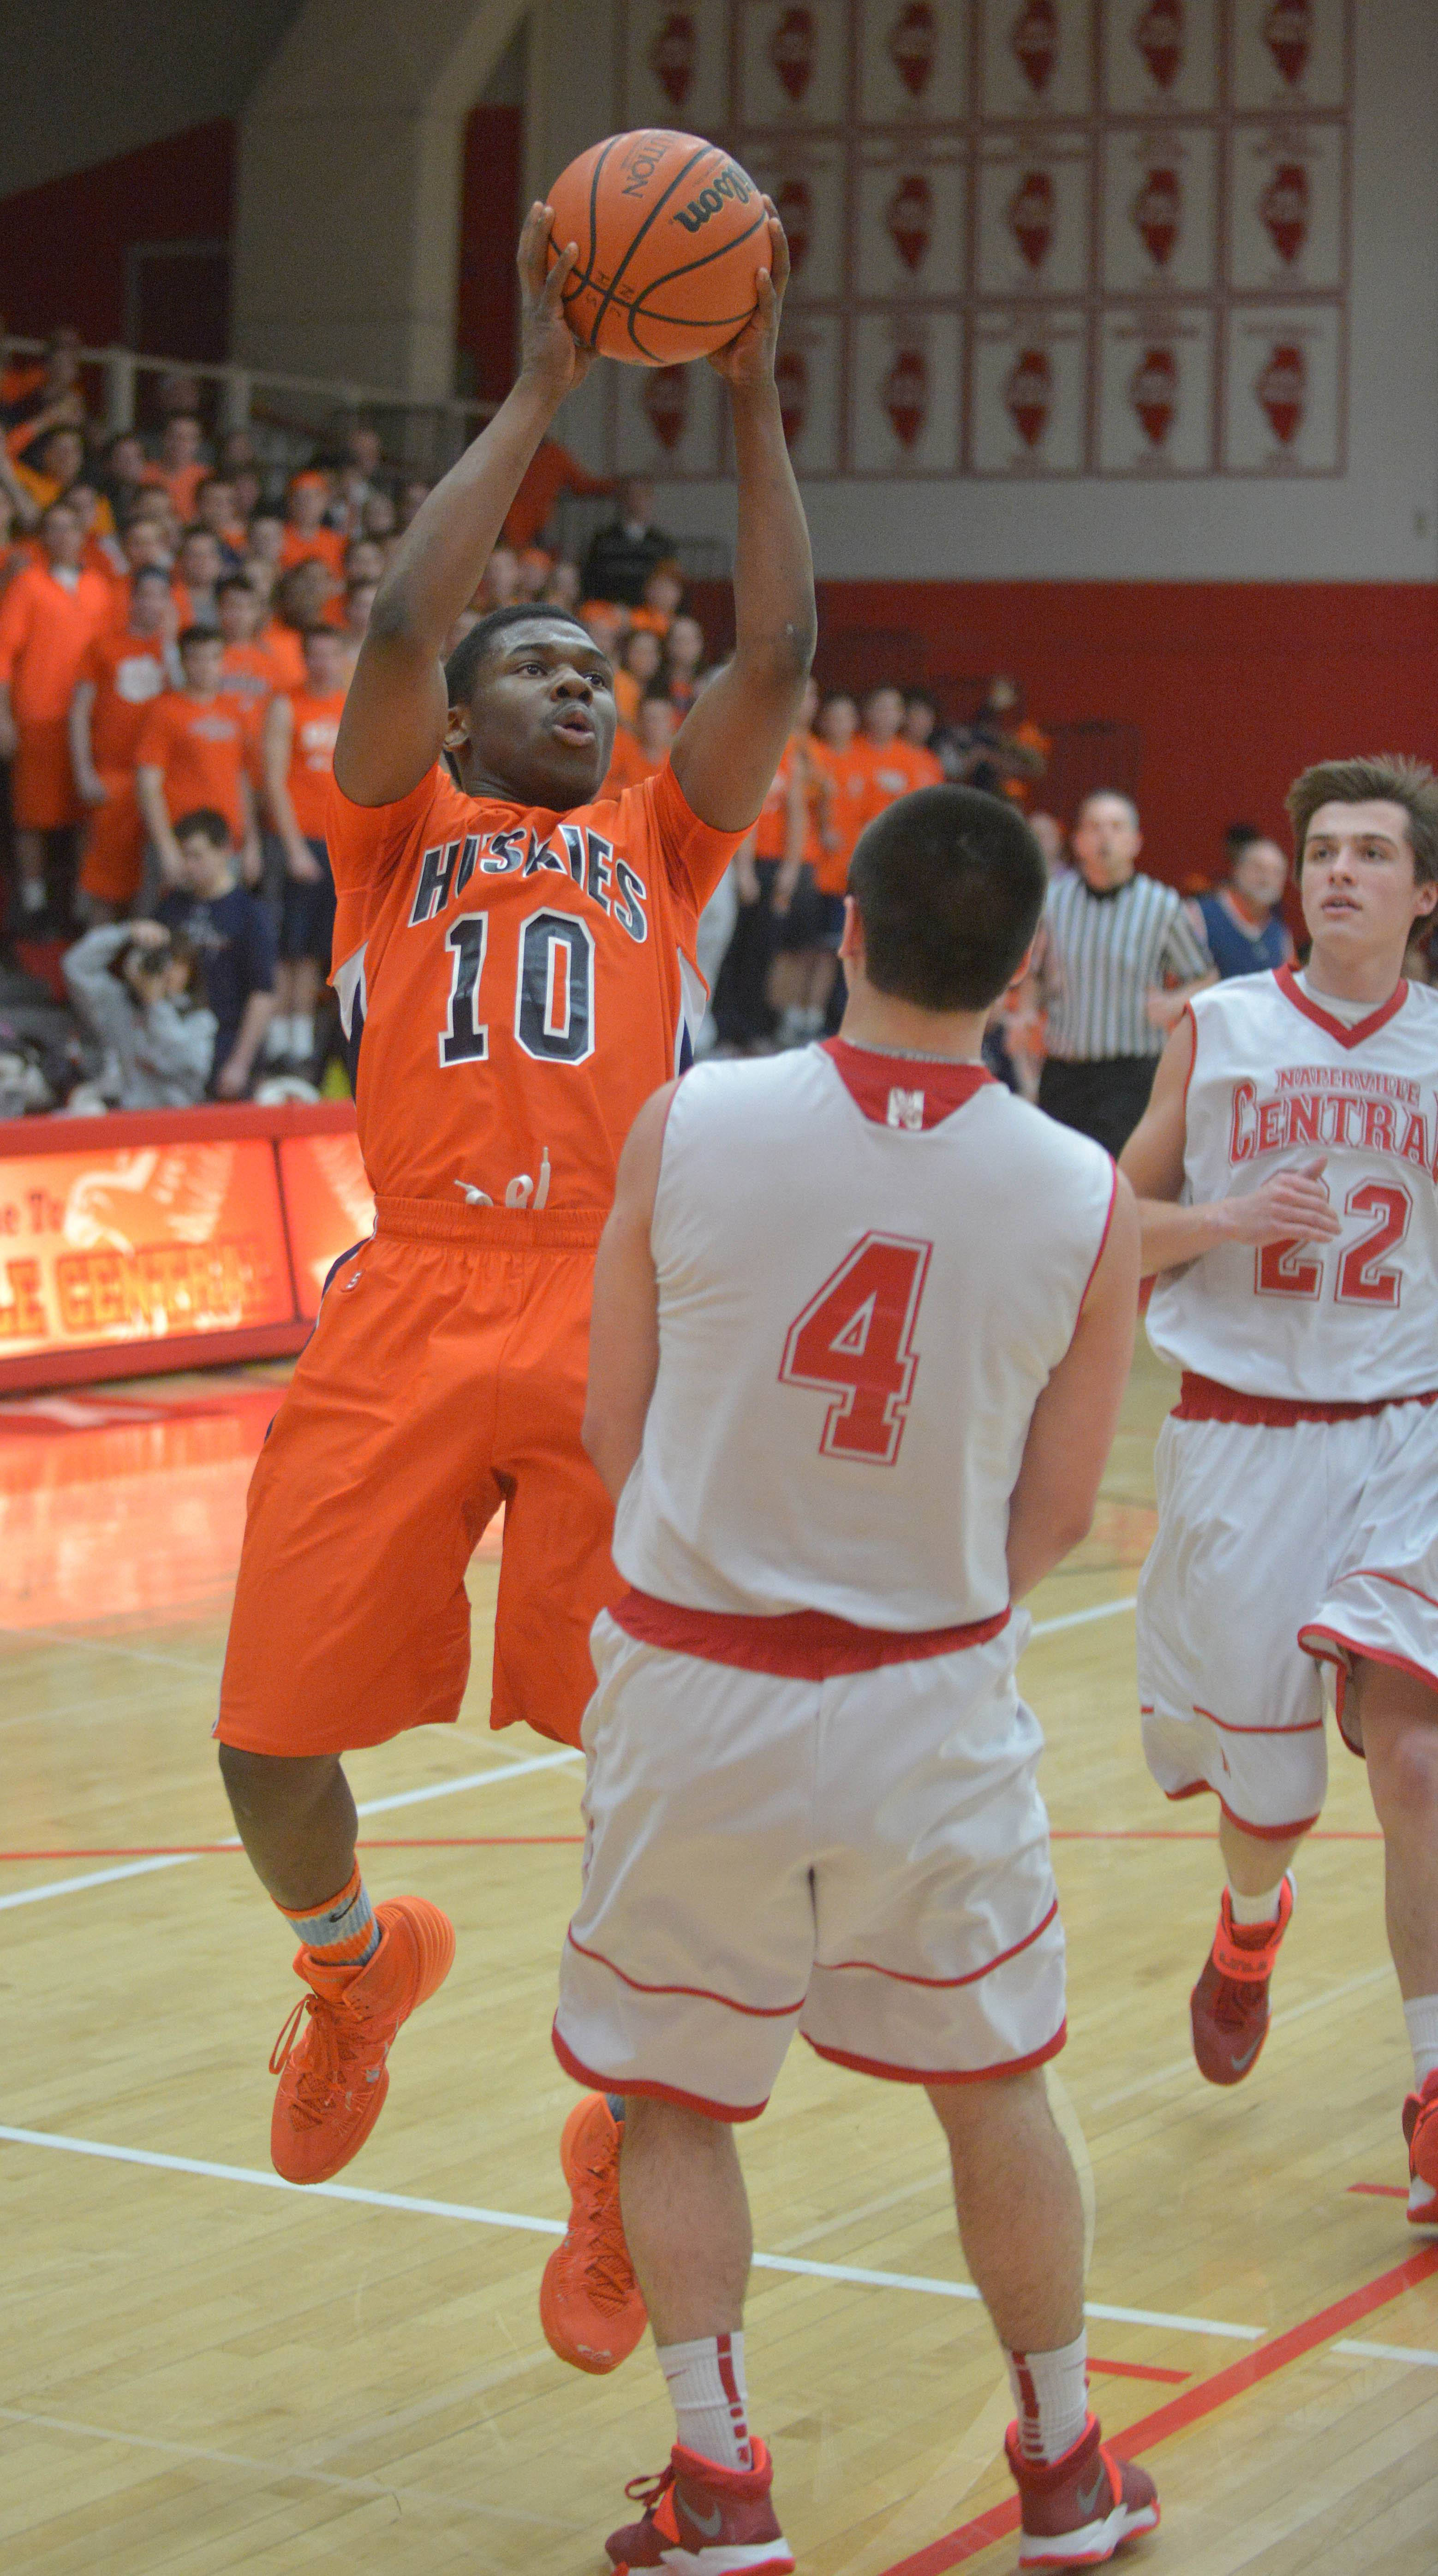 Naperville North's Jelani McClain Jr. takes a shot over Ryan Antony of Naperville Central Wednesday night.